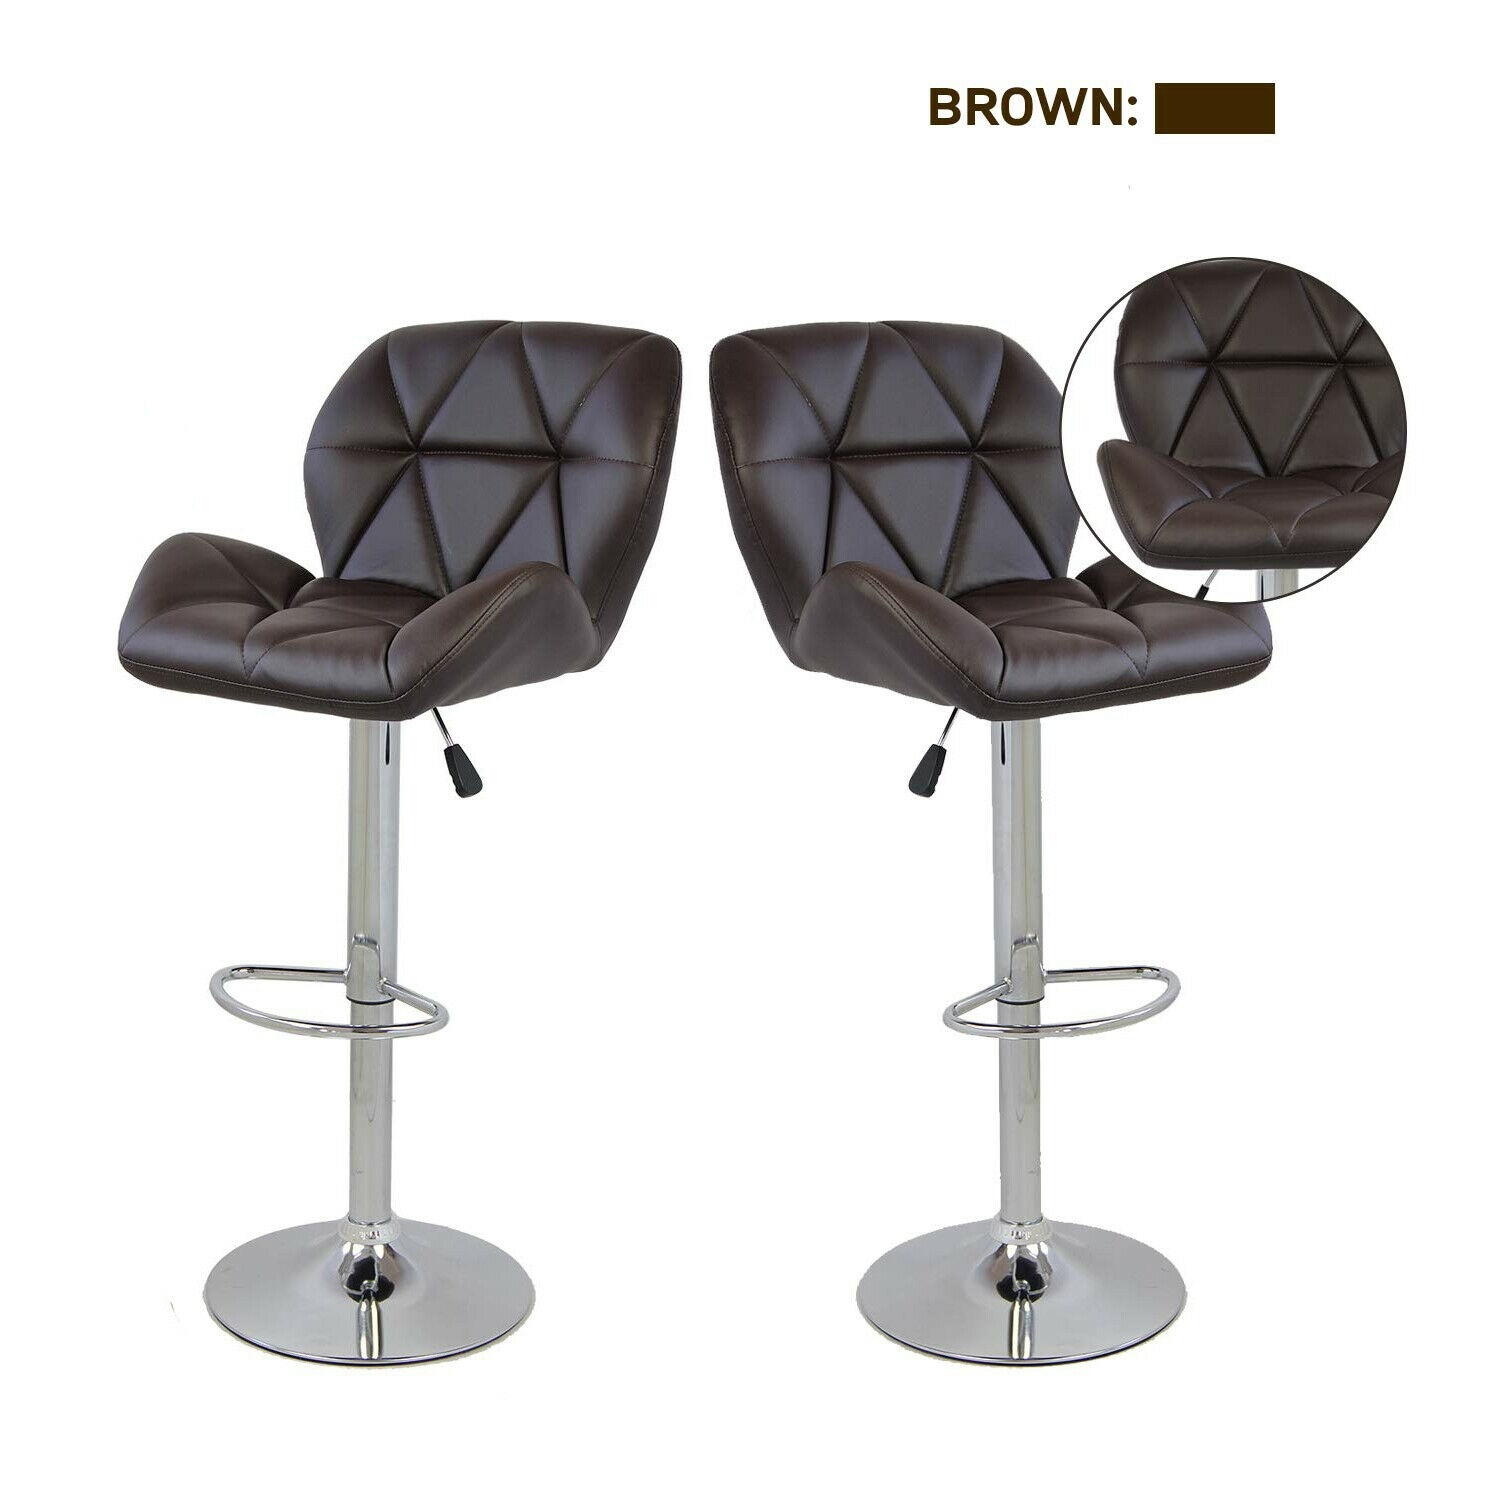 Set Of 2 PU Leather Bar Stool Adjustable Swivel Hydraulic Dinning Chair Brown US